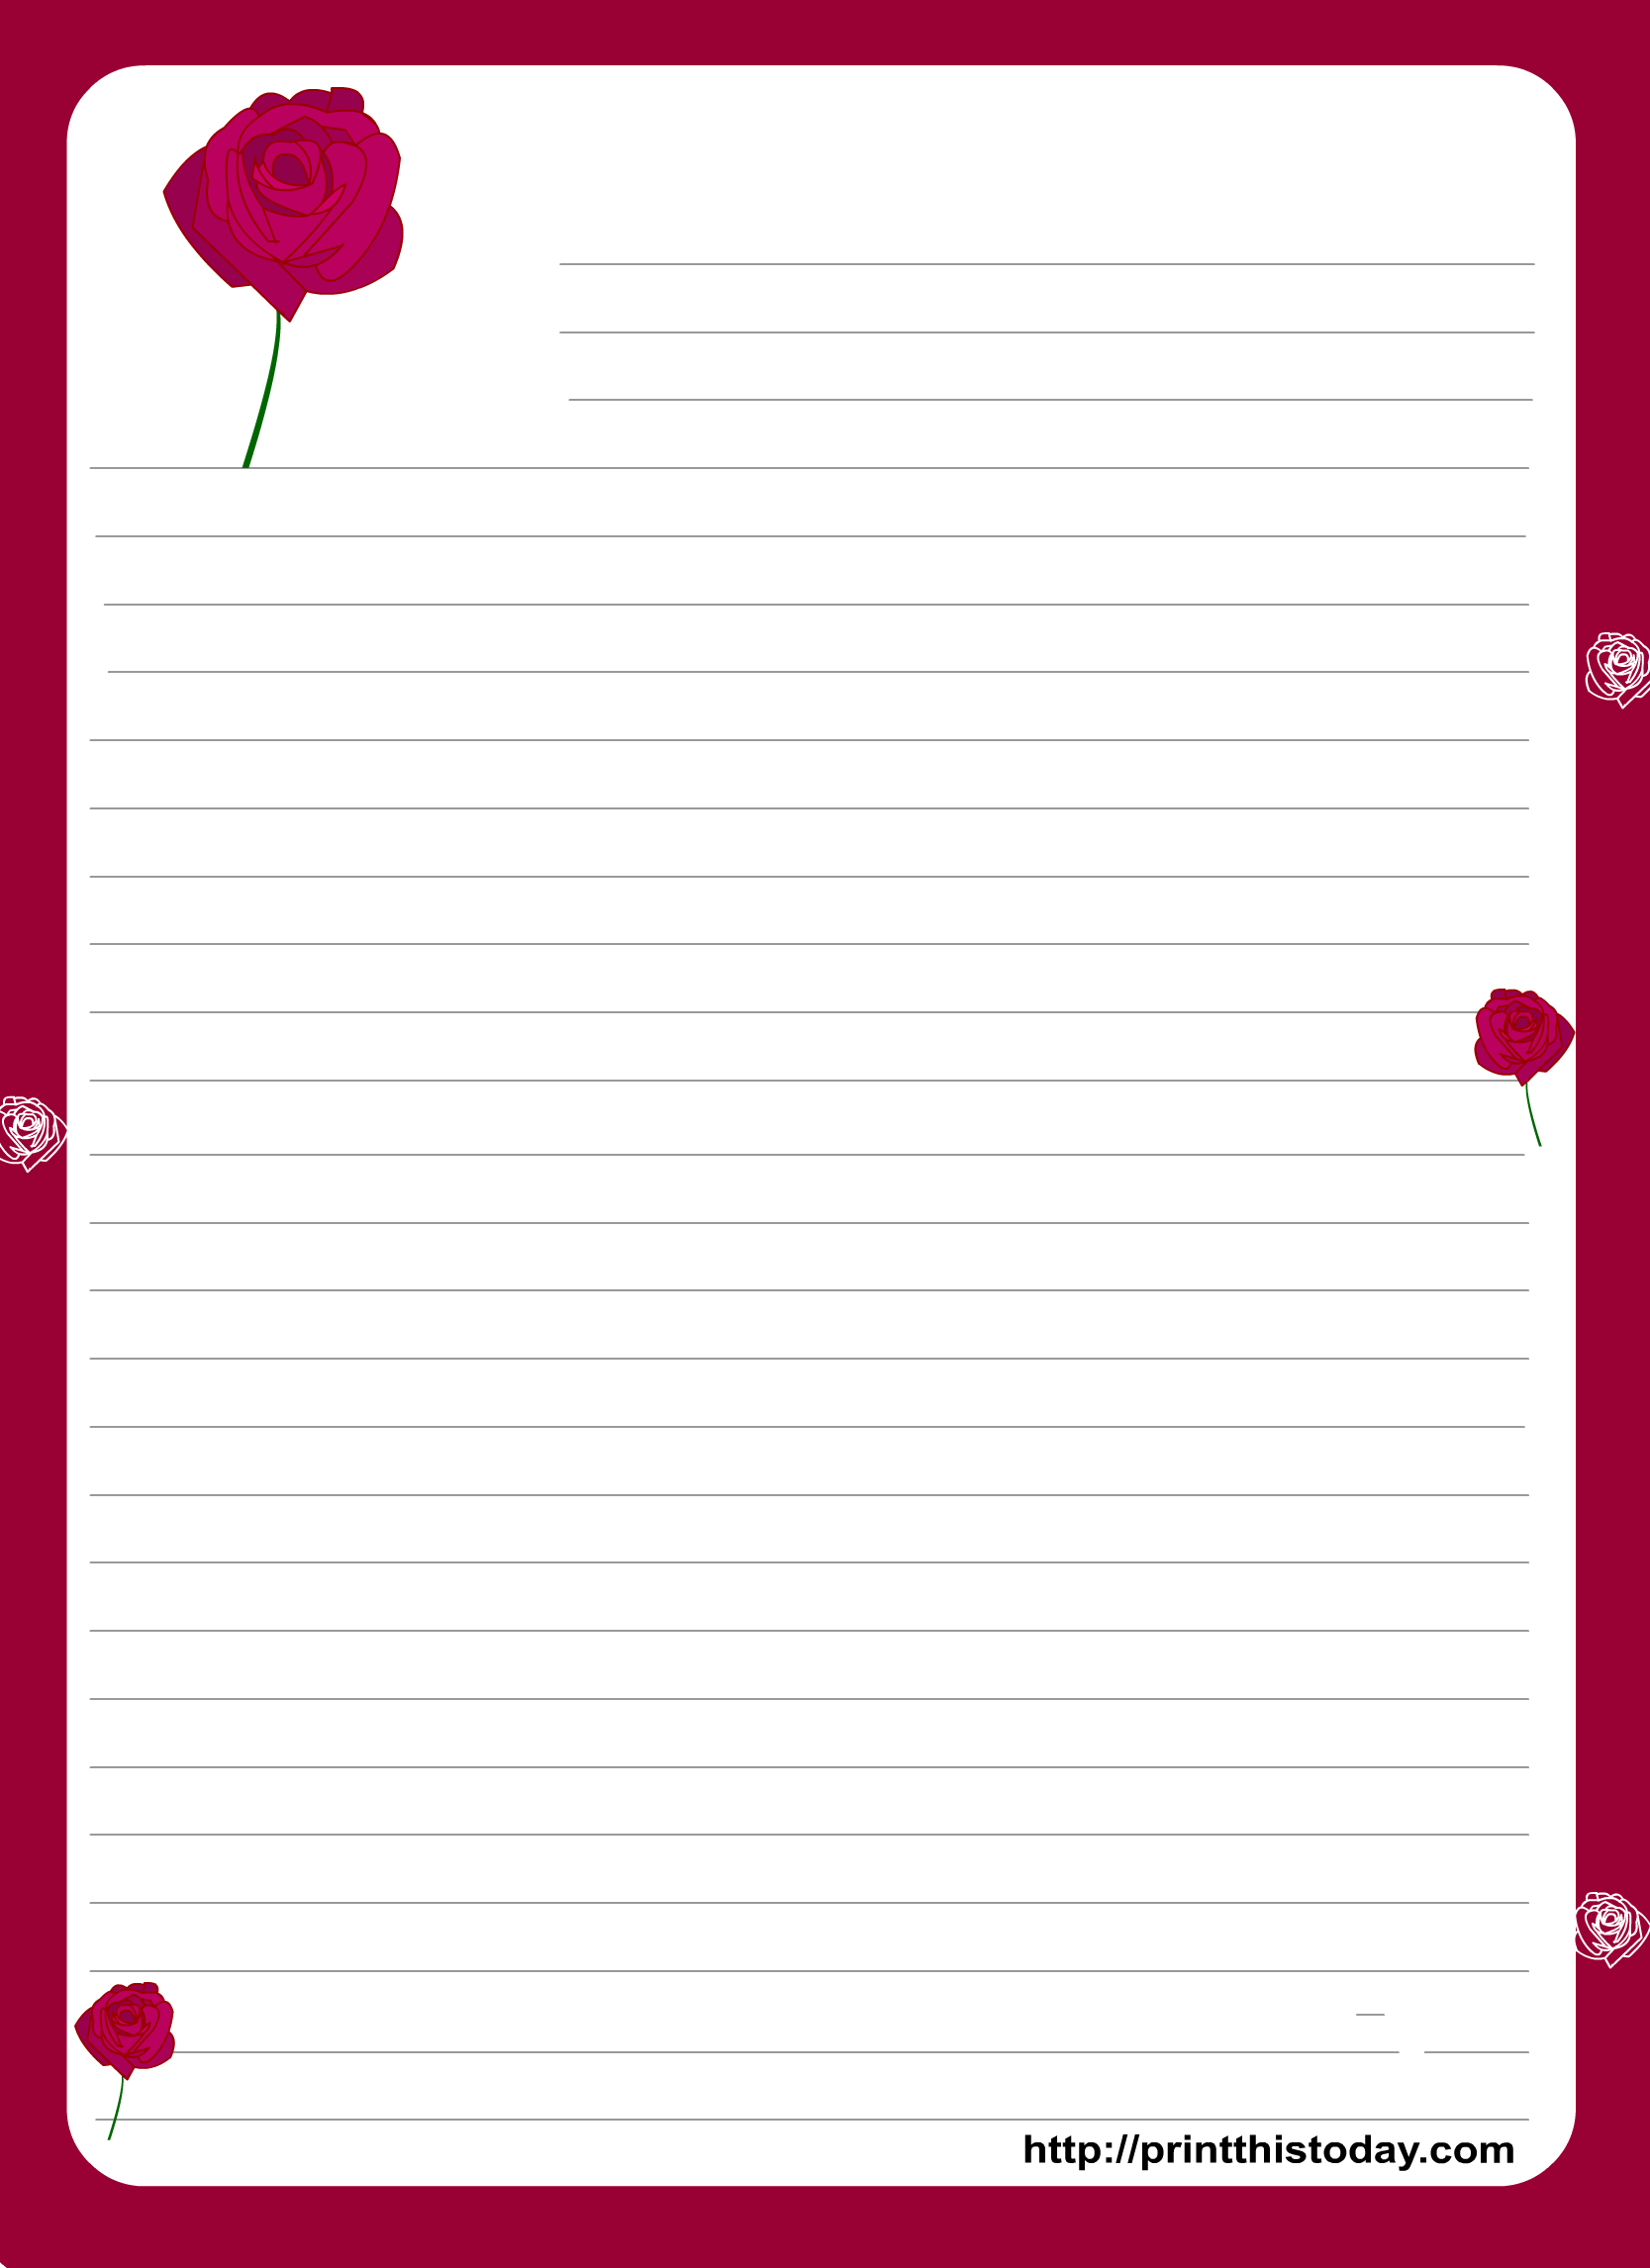 A Cute Letter Writing Paper Decorated With Cute Hearts Is